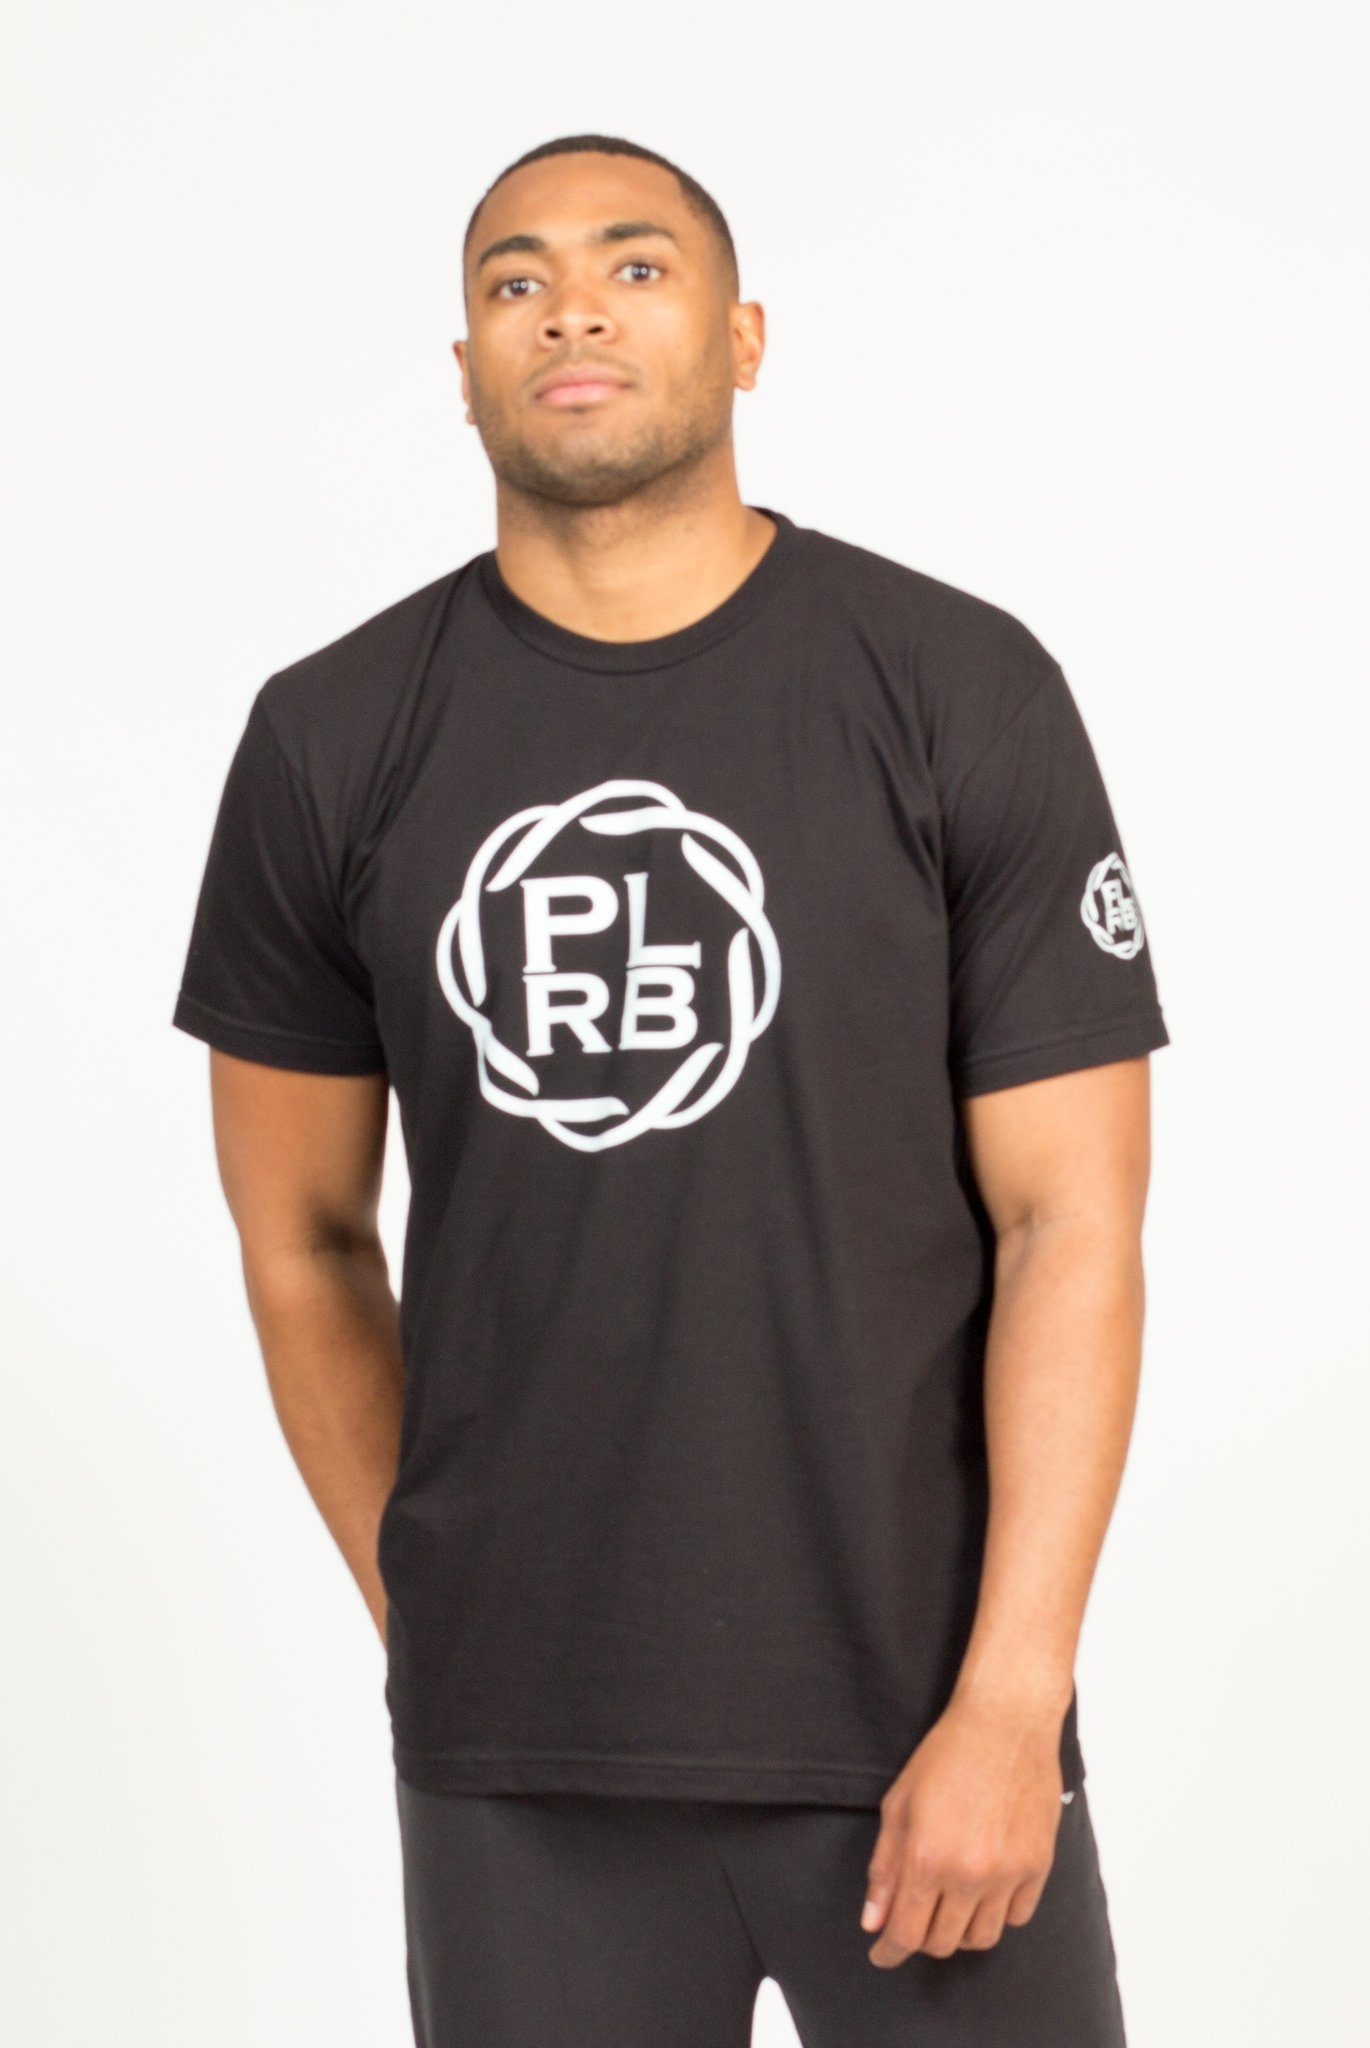 PLRB LOGO T-SHIRT IN BLACK | Poor Little Rich Boy Clothing